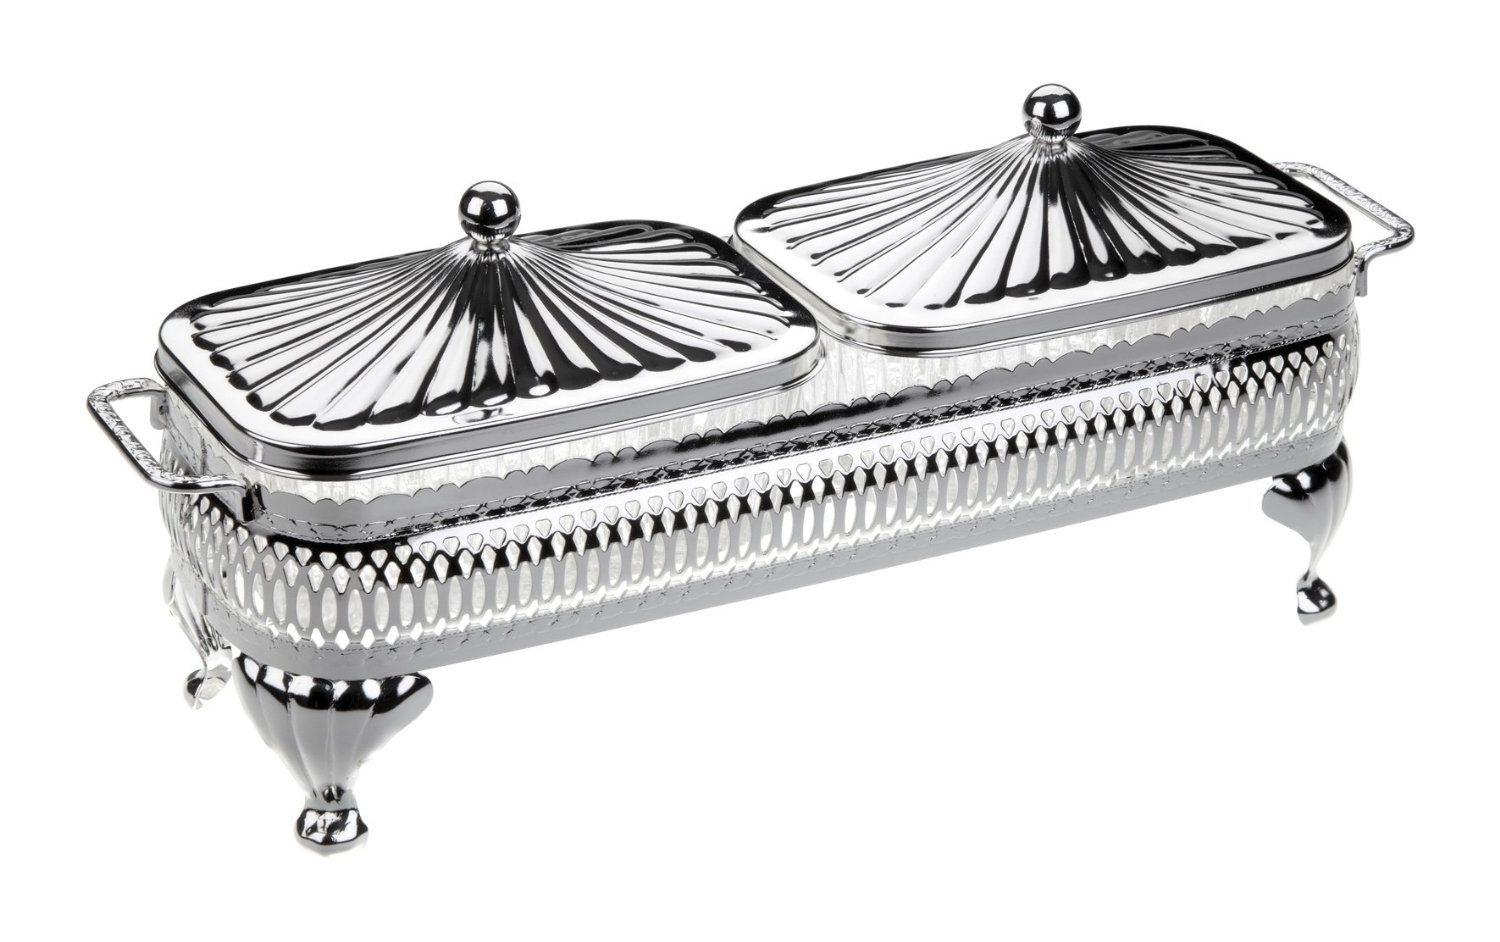 Butter Jam Dish In A Silver Plated Frame With Tarnish